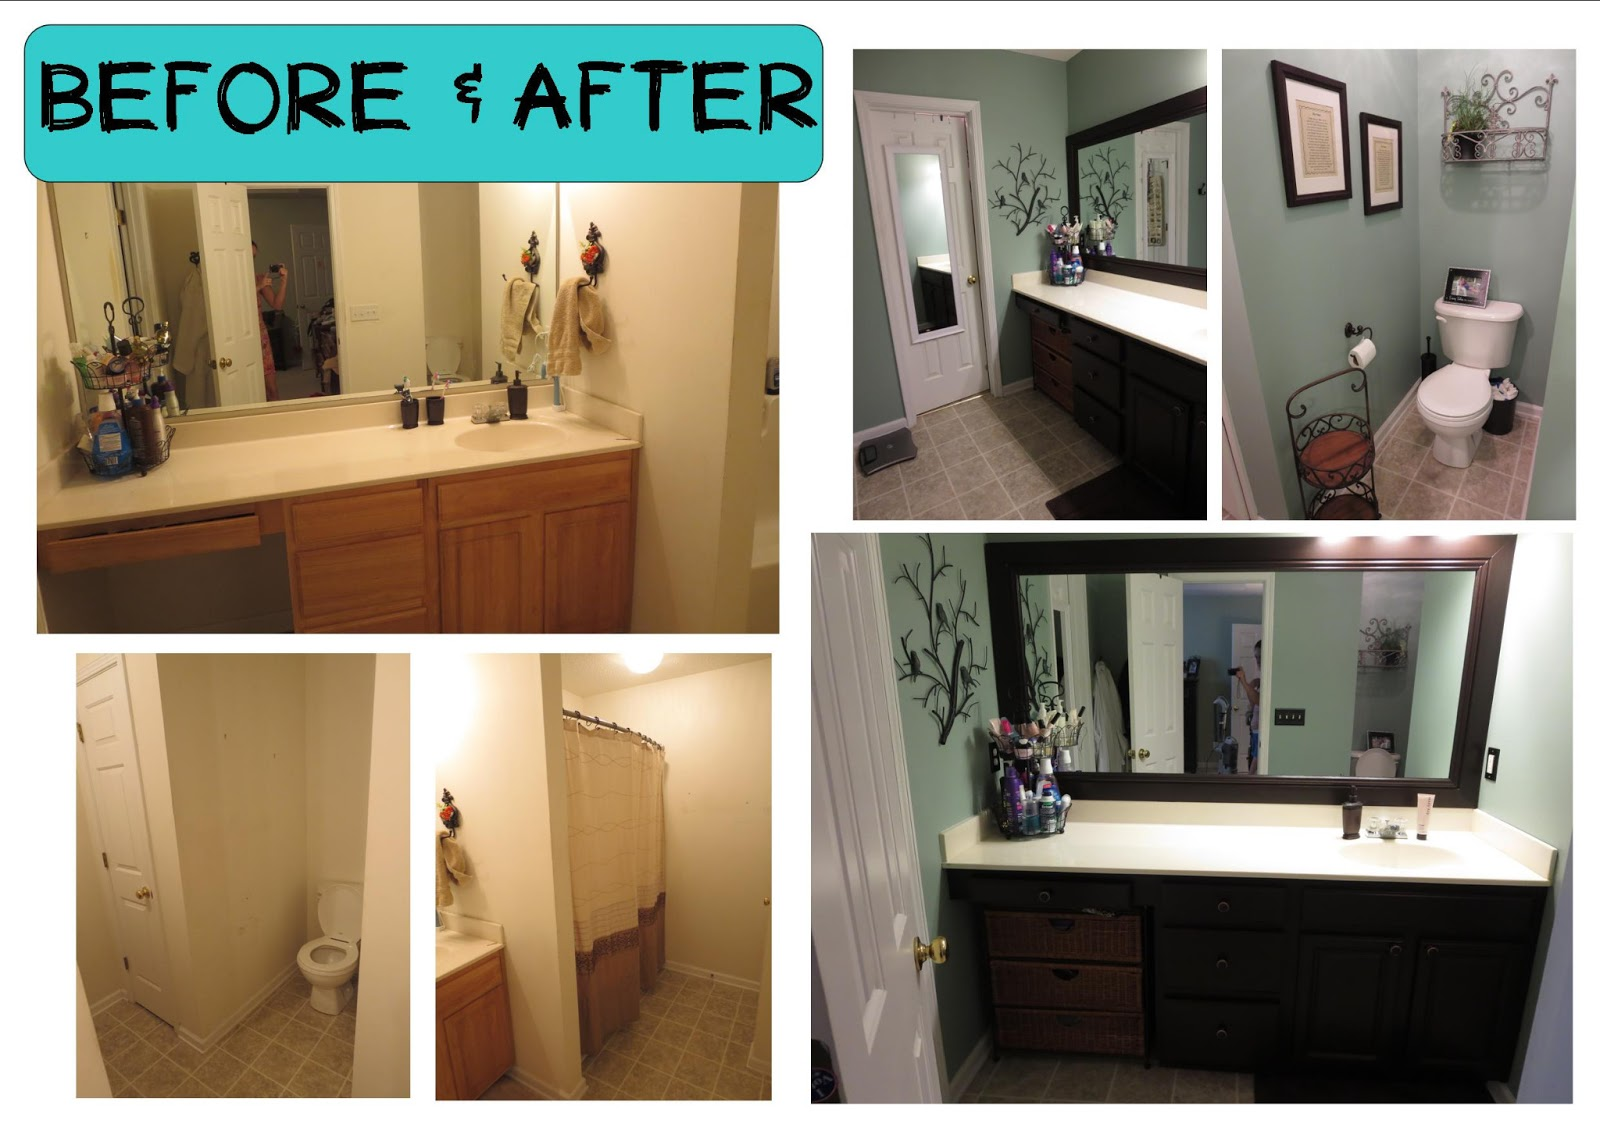 Kitchen Cabinet Transformation Kit Finding Fairy Tales Diy Project 1 Bathroom Remodel